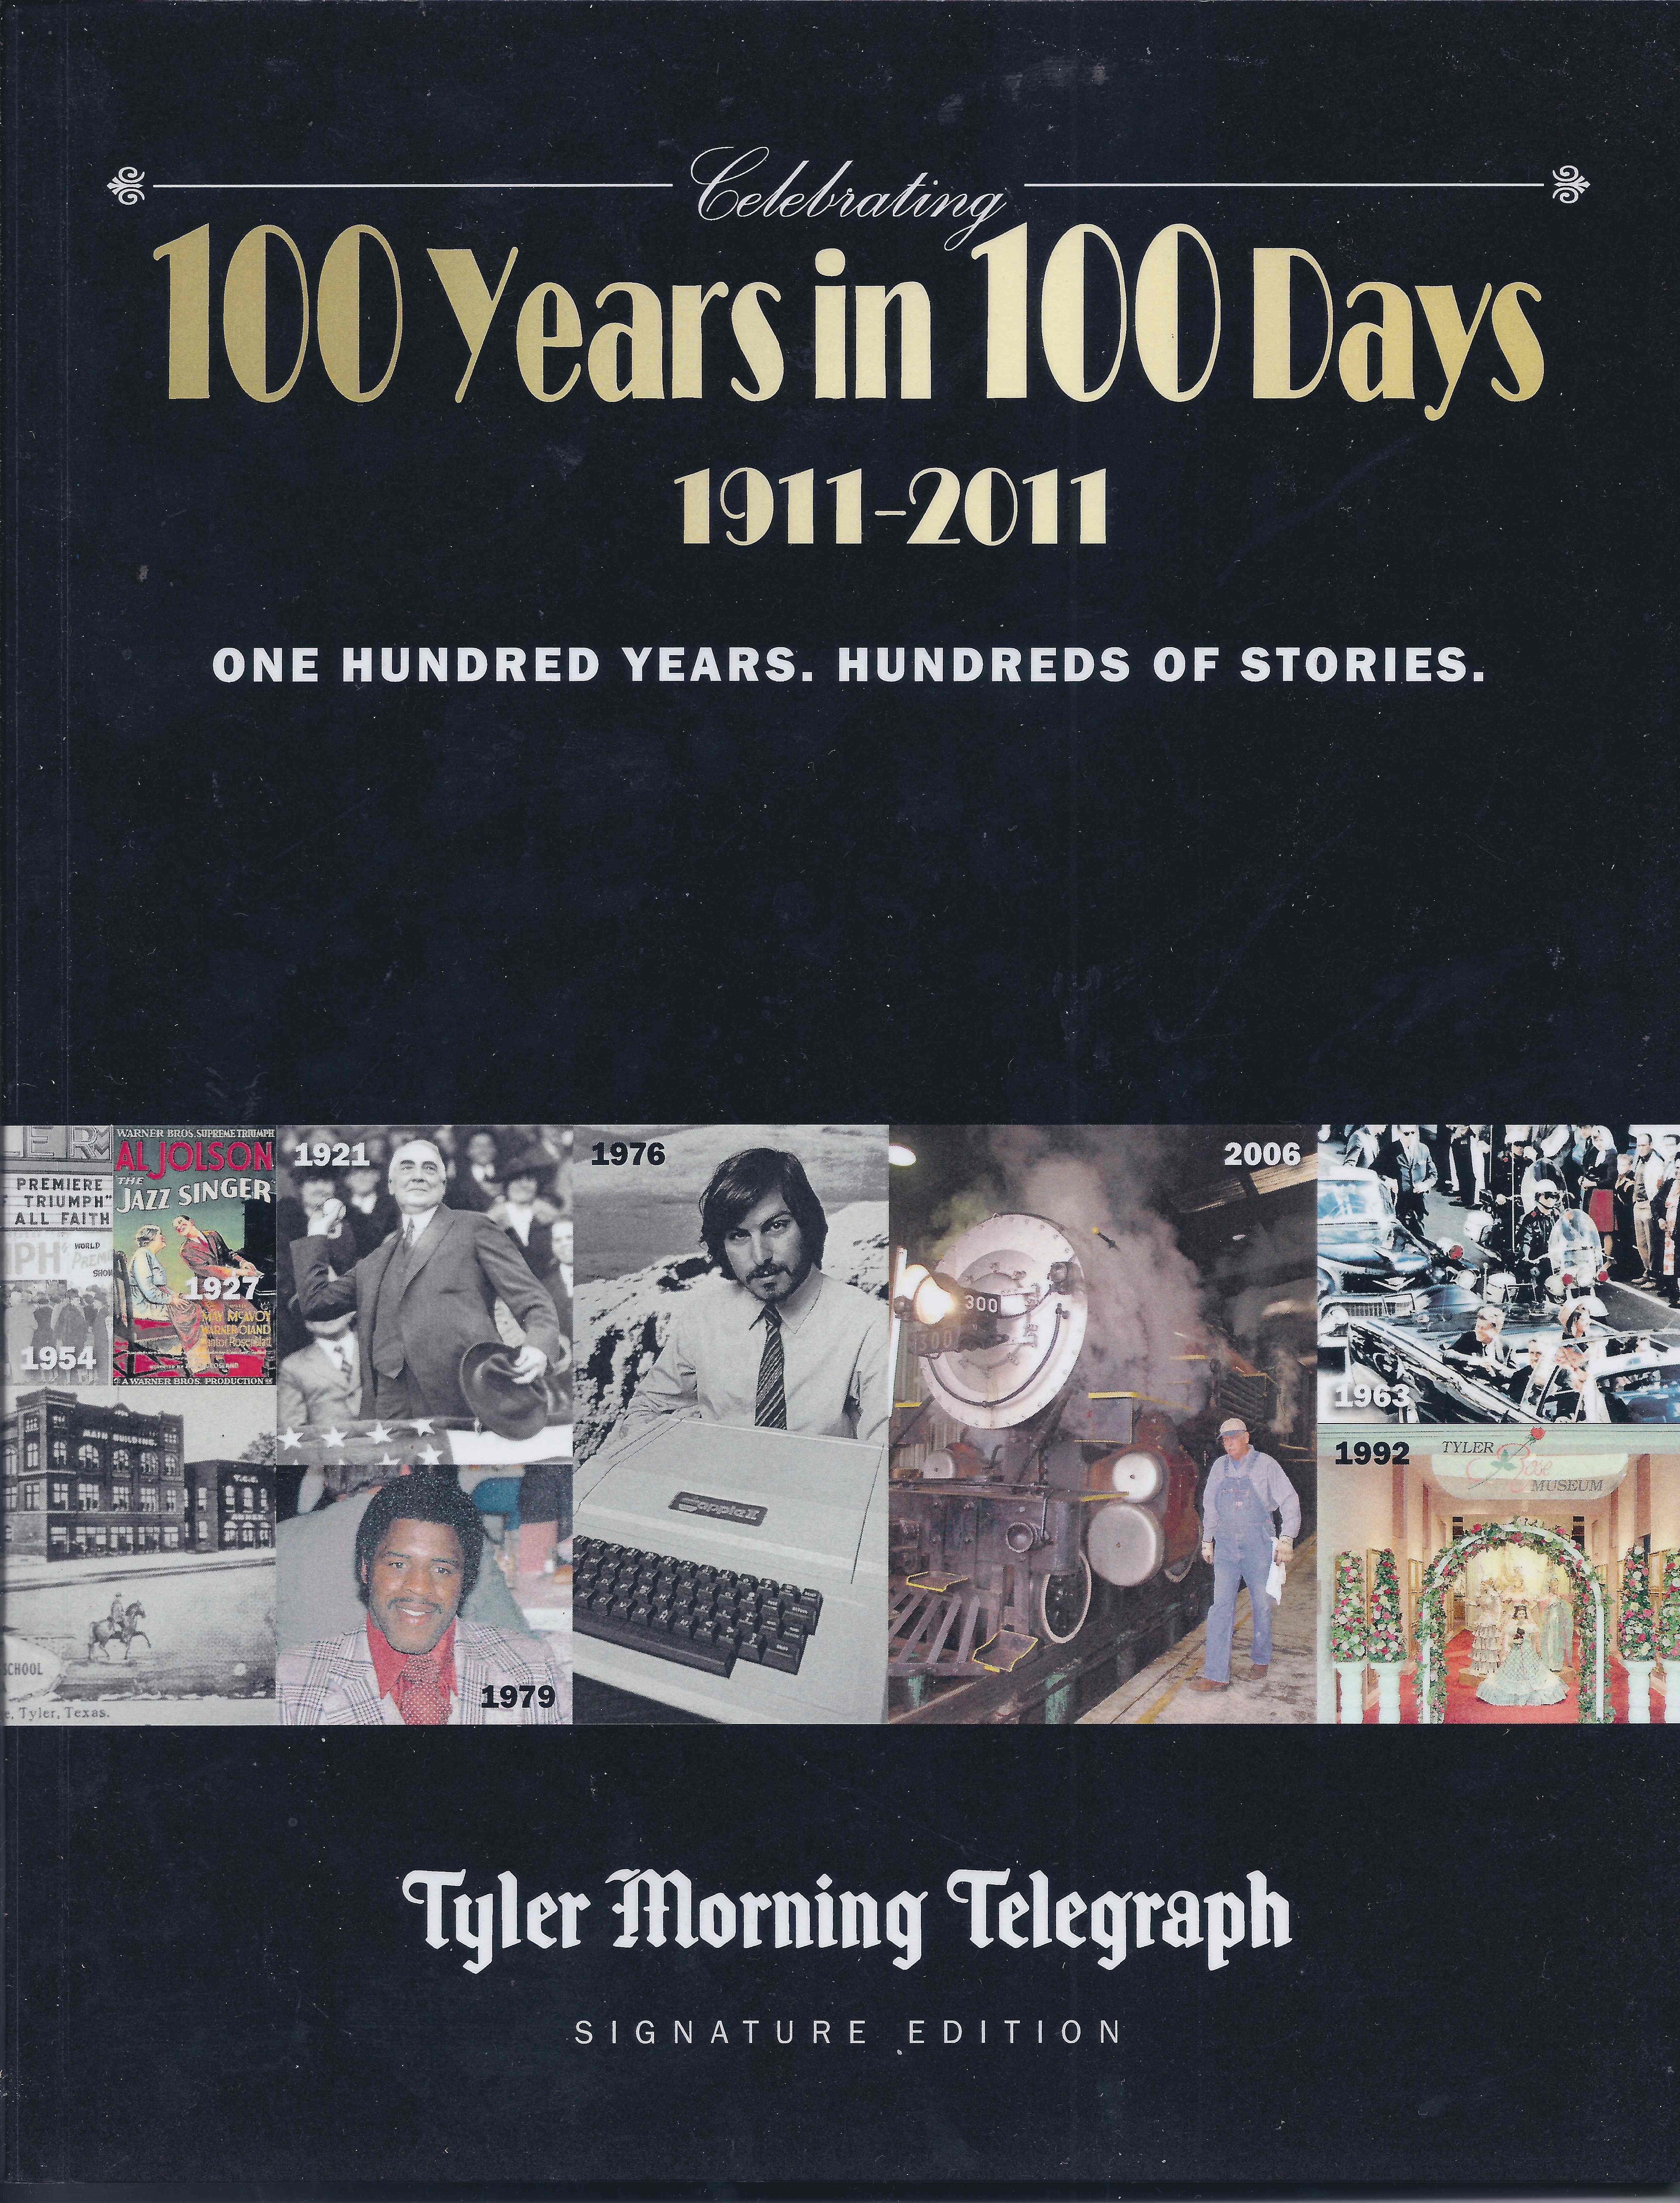 Celebrating 100 Years in 100 Days, 1911-2011, by Tyler Morning Telegraph News Staff.